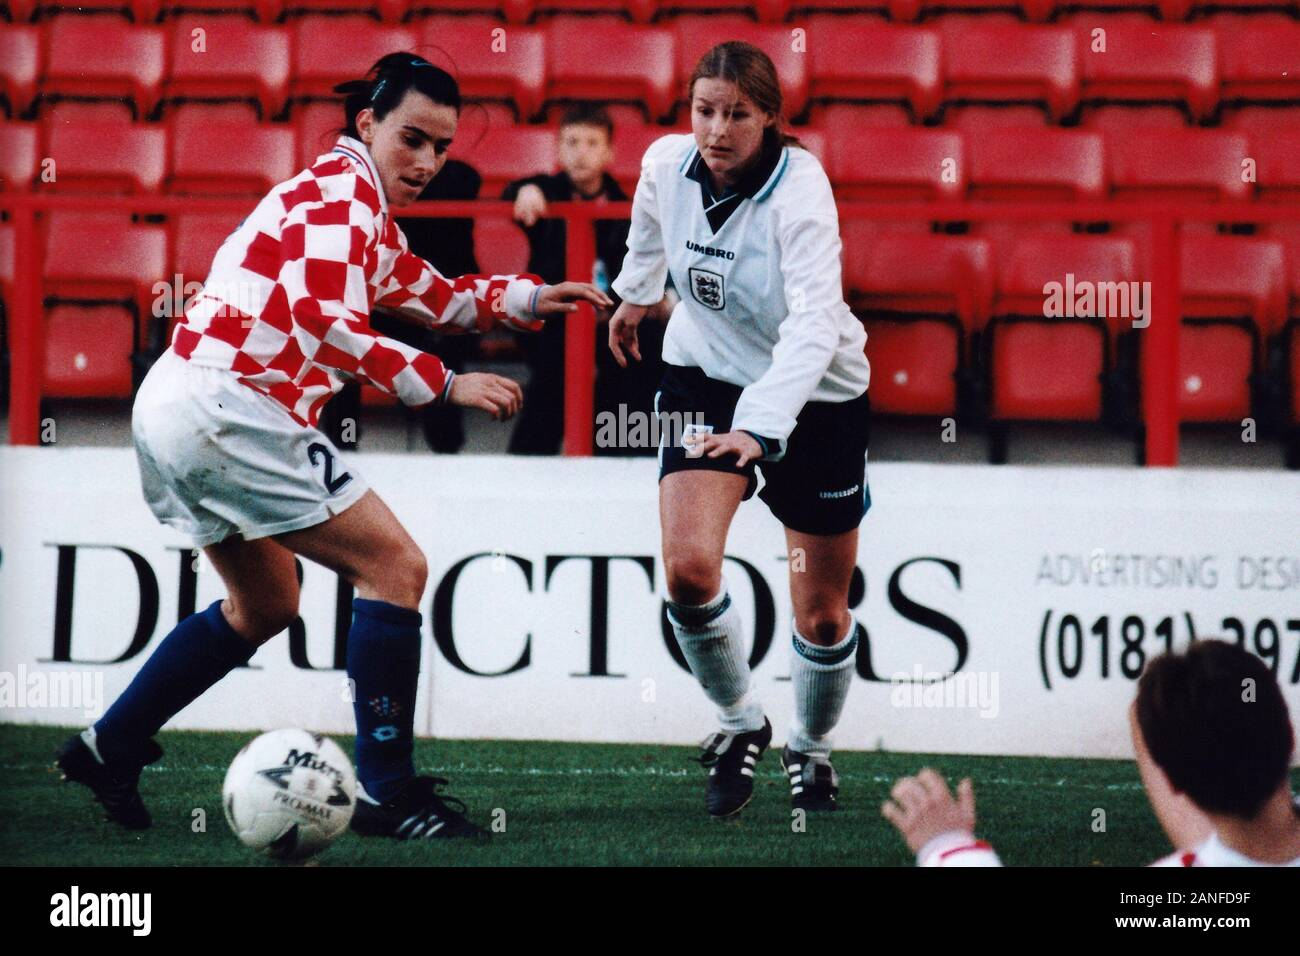 Kelly Smith of England during England Women vs Croatia Women, European Championships Qualifier Football at The Valley, Charlton Athletic FC on 19th No Stock Photo